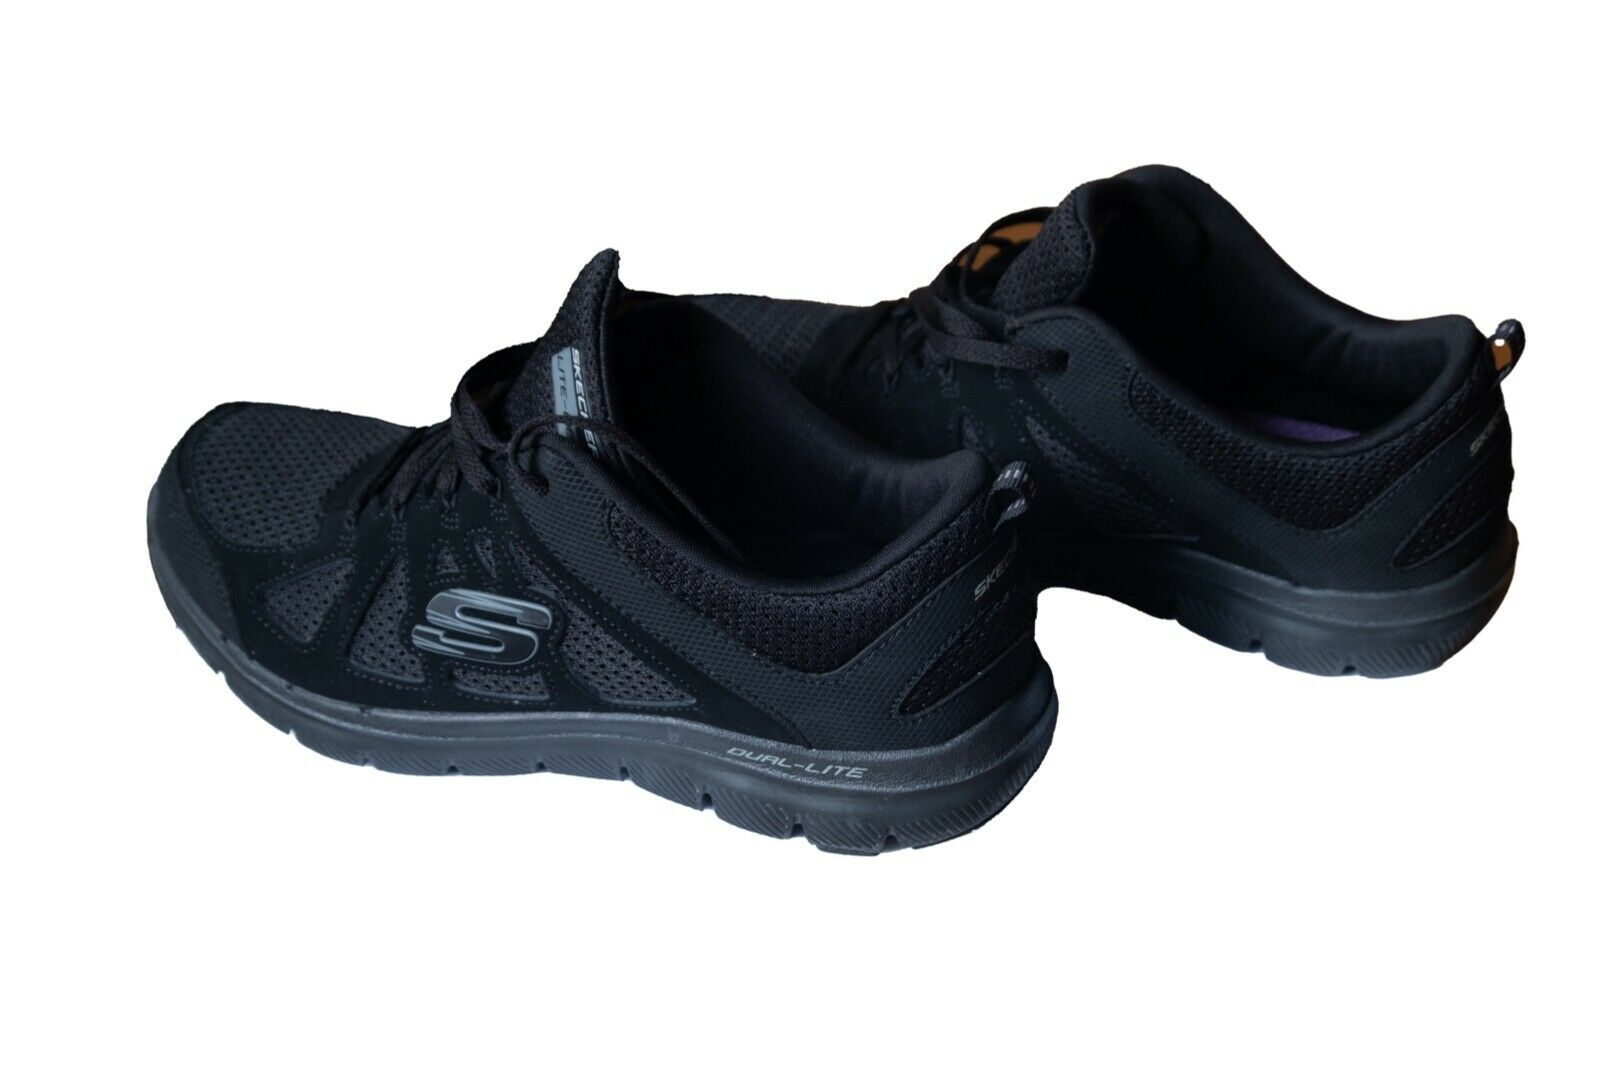 Skechers Dual Lite Air Cooled Trainers